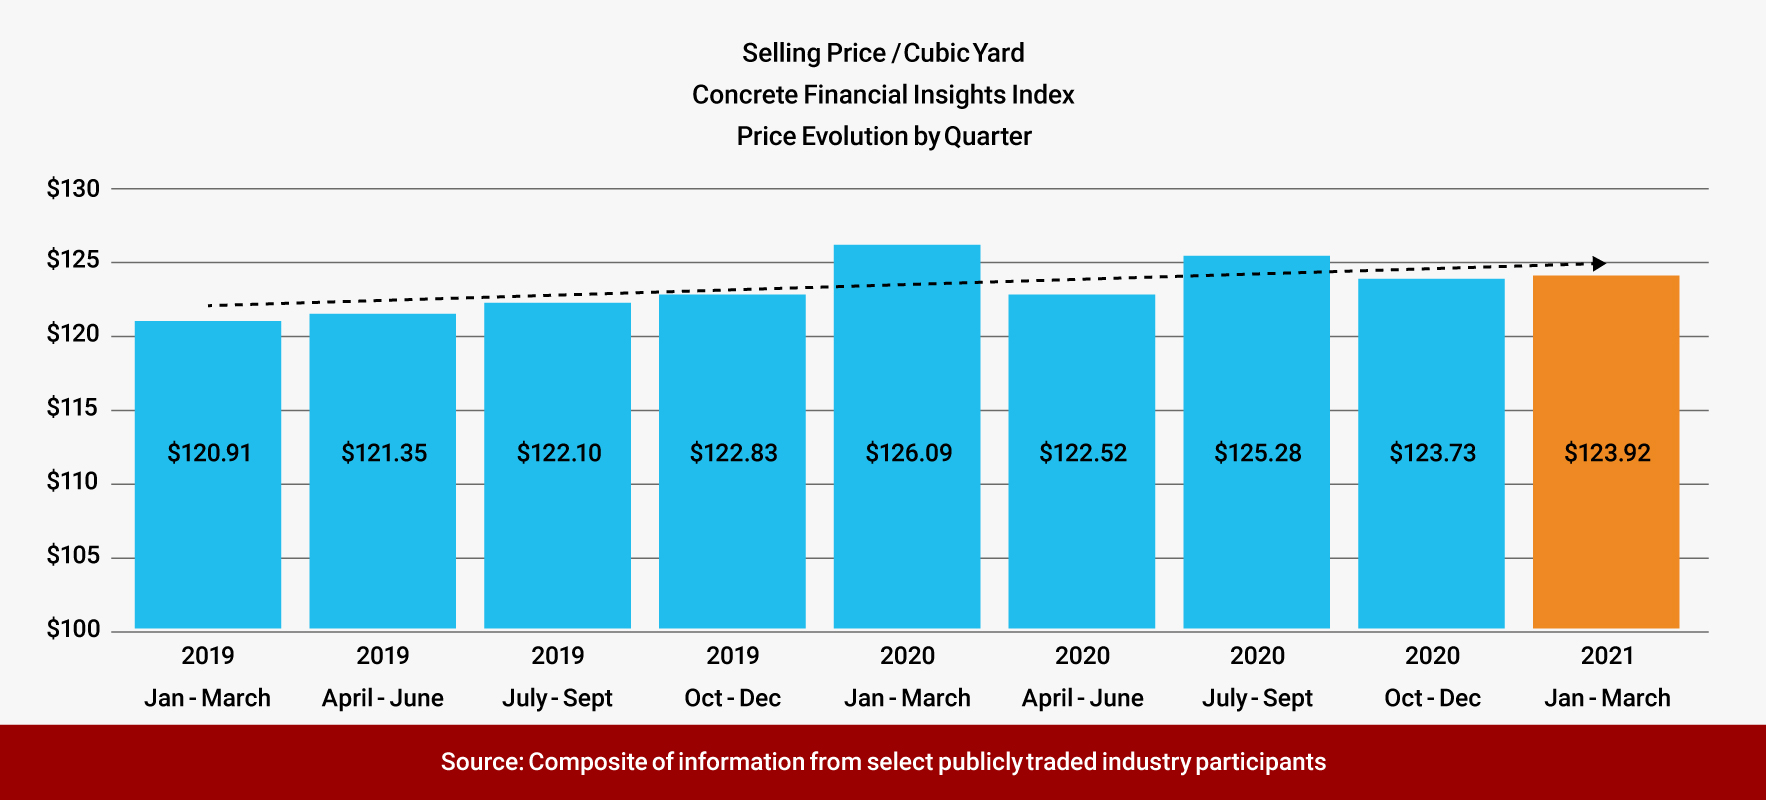 Quarterly Concrete Selling Price Evolution - January 2019 through March 2021, Concrete Financial Insights Index